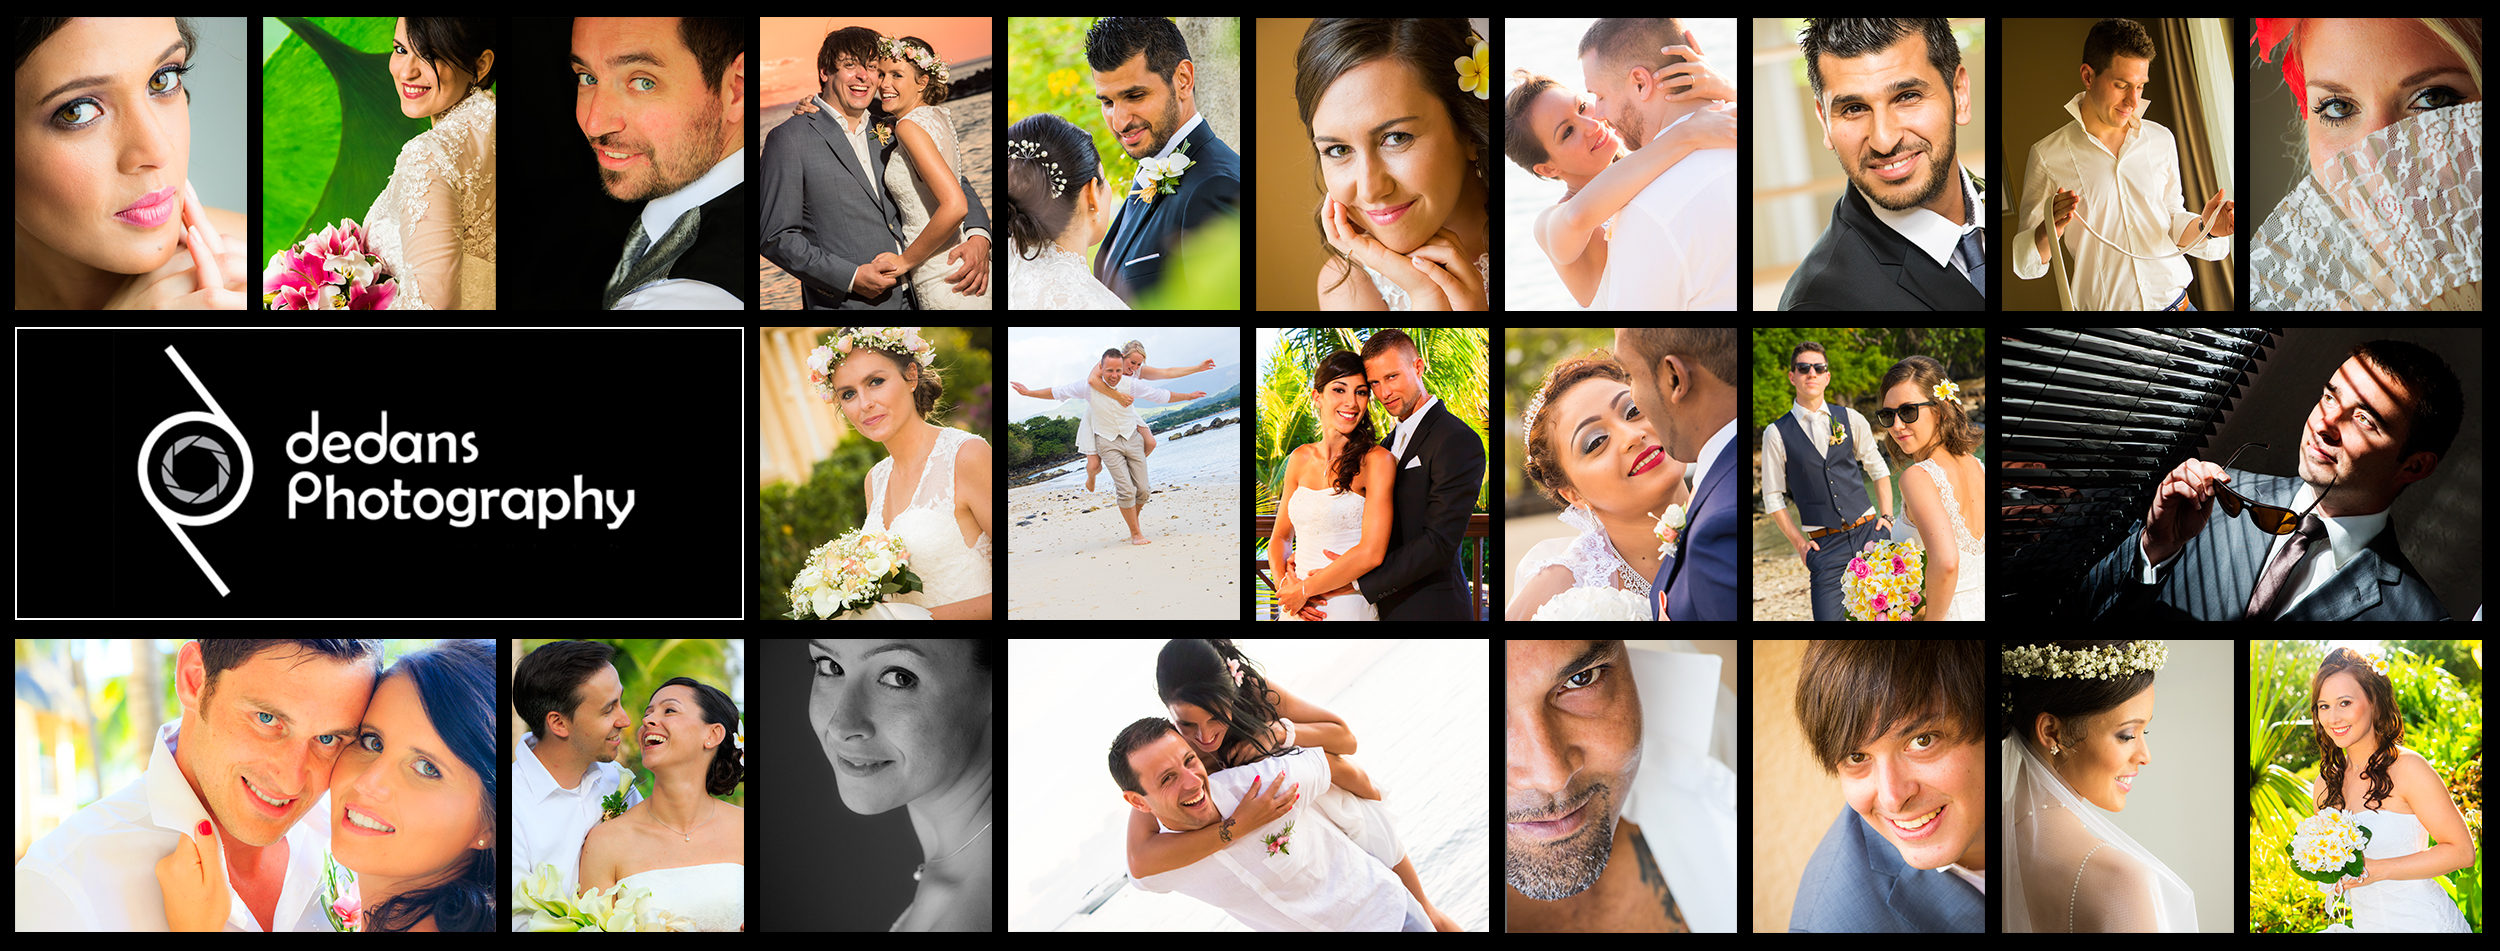 Wedding Photography, Dedans Photography, agency based in Mauritius